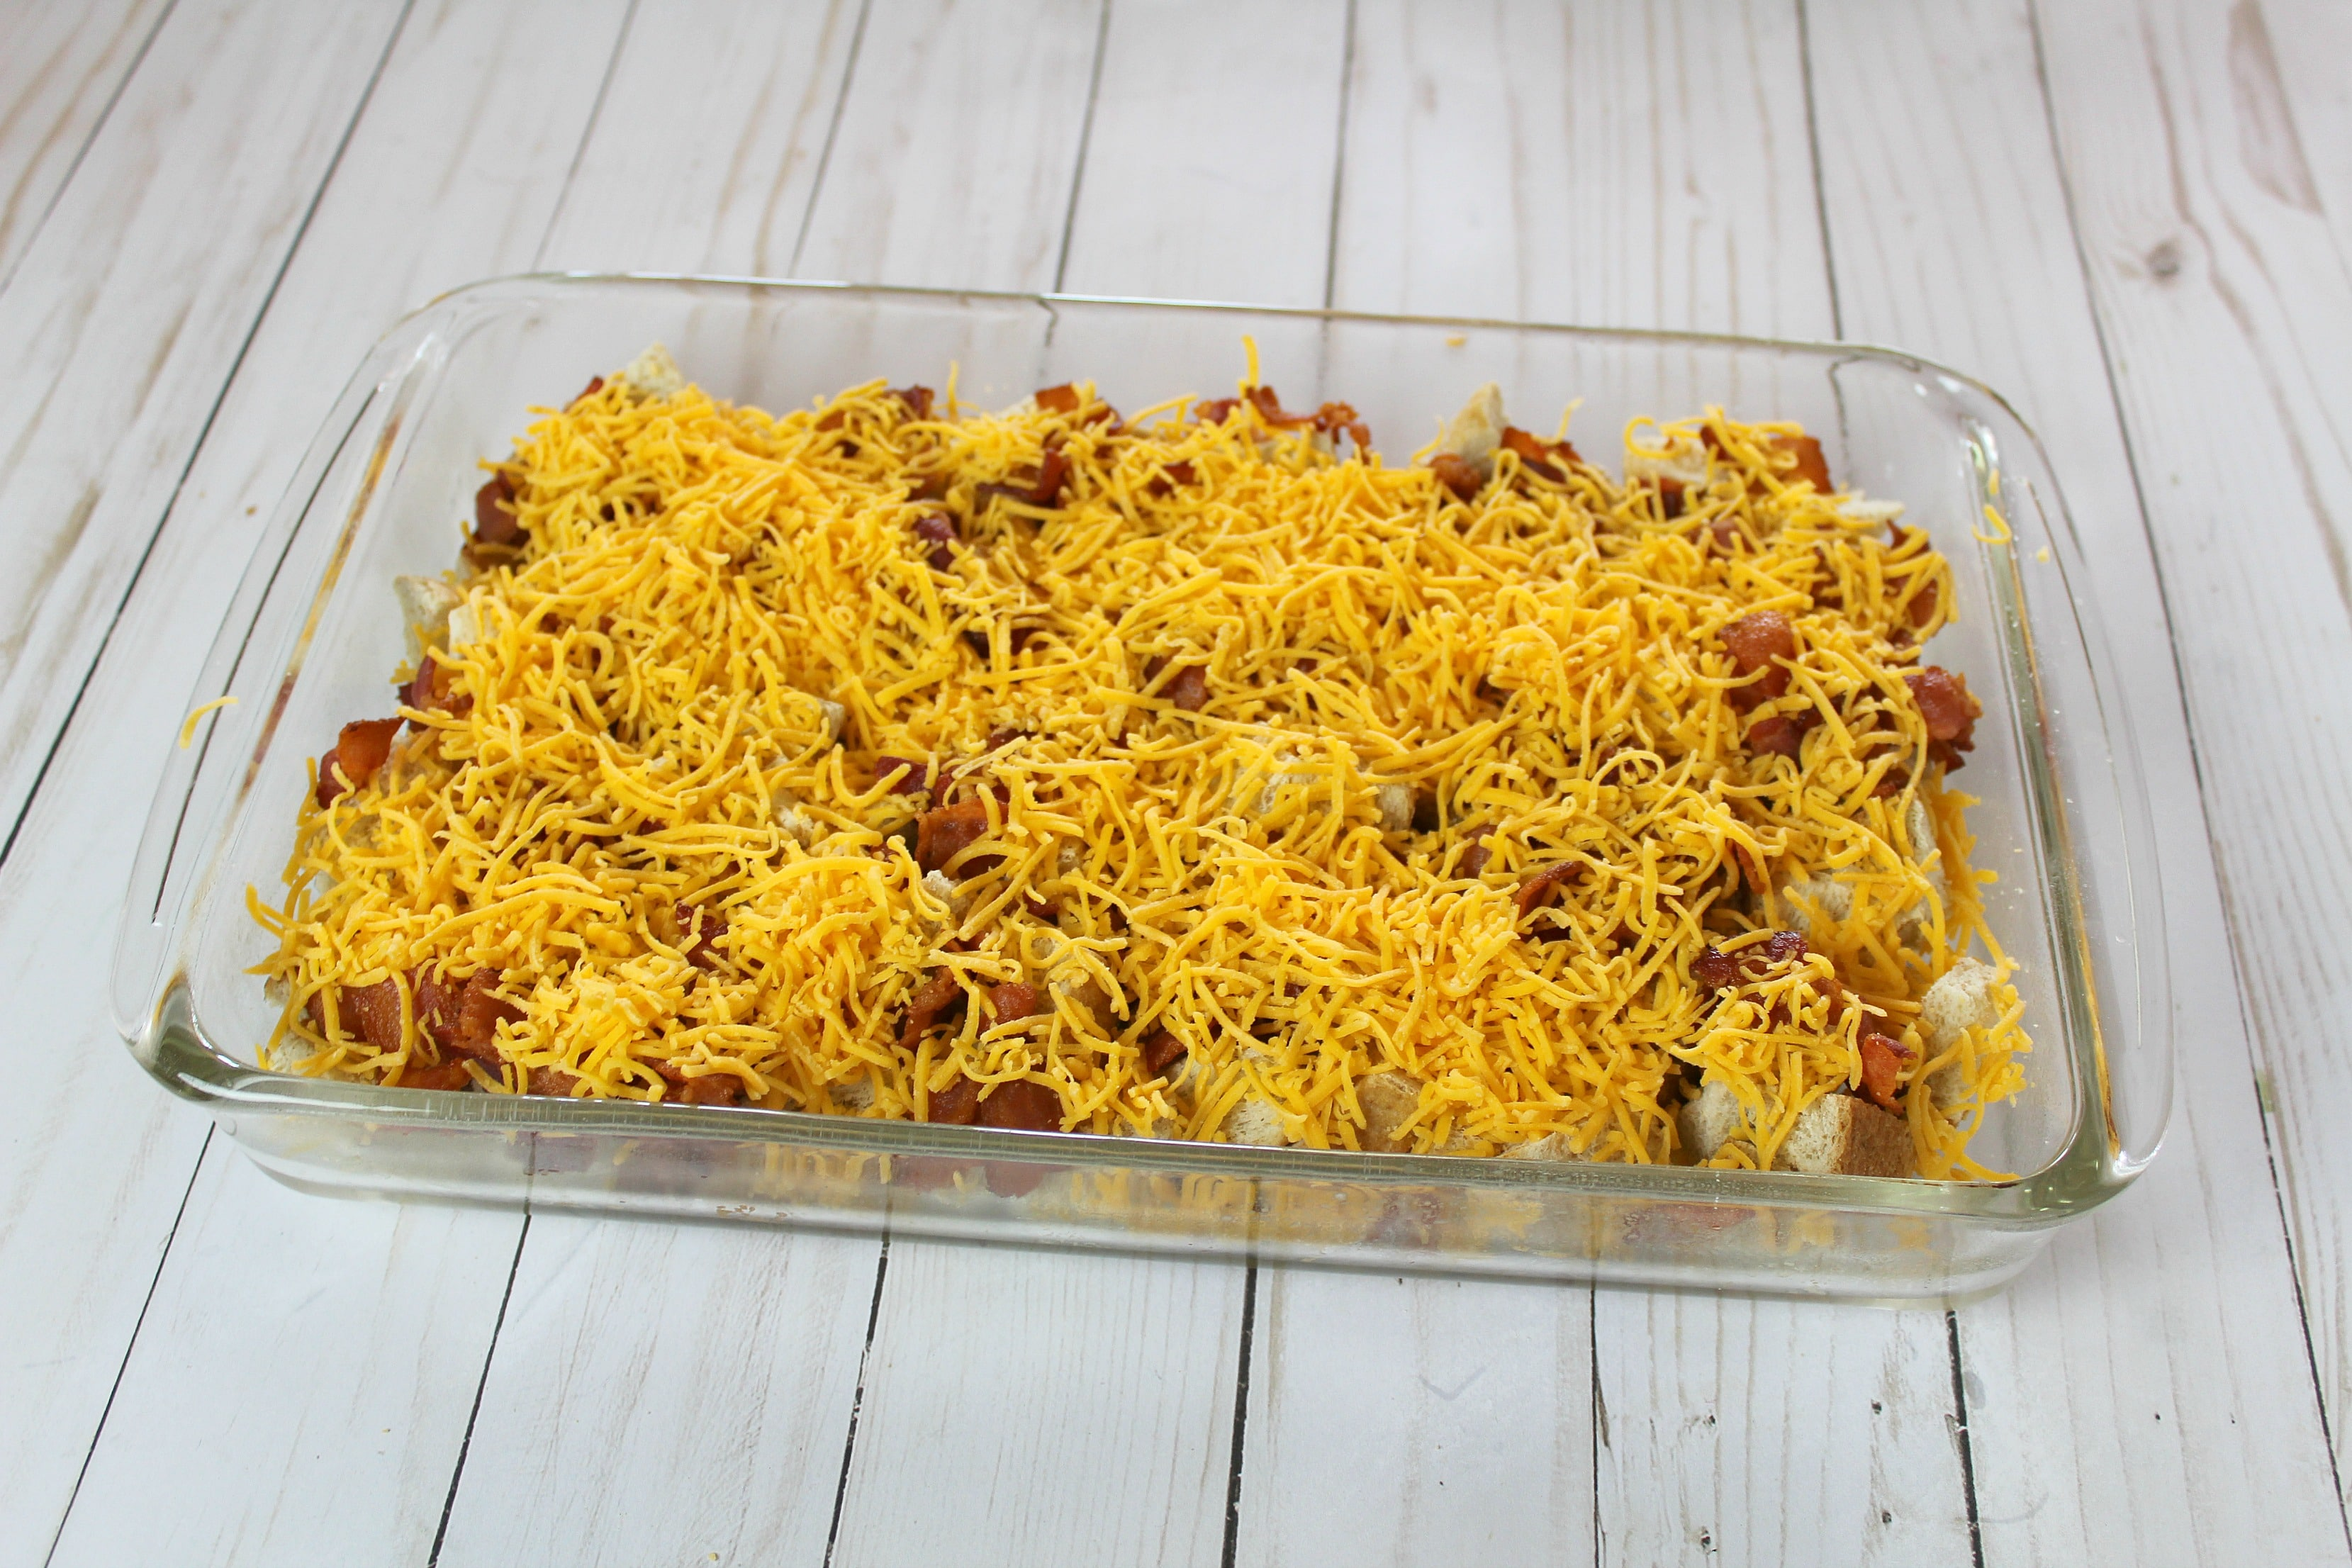 Add layer of meat, like sausage or bacon, and cheese over bread.